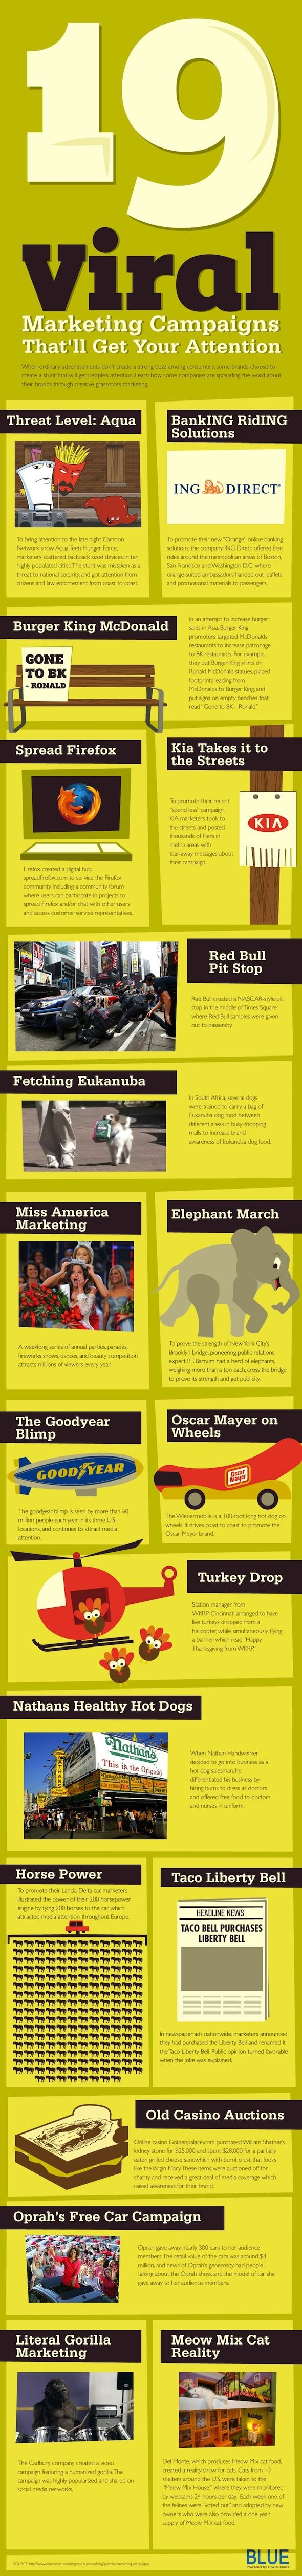 19 Viral Marketing Stories Sure To Get Your Company Rocking To The Top [Infographic]